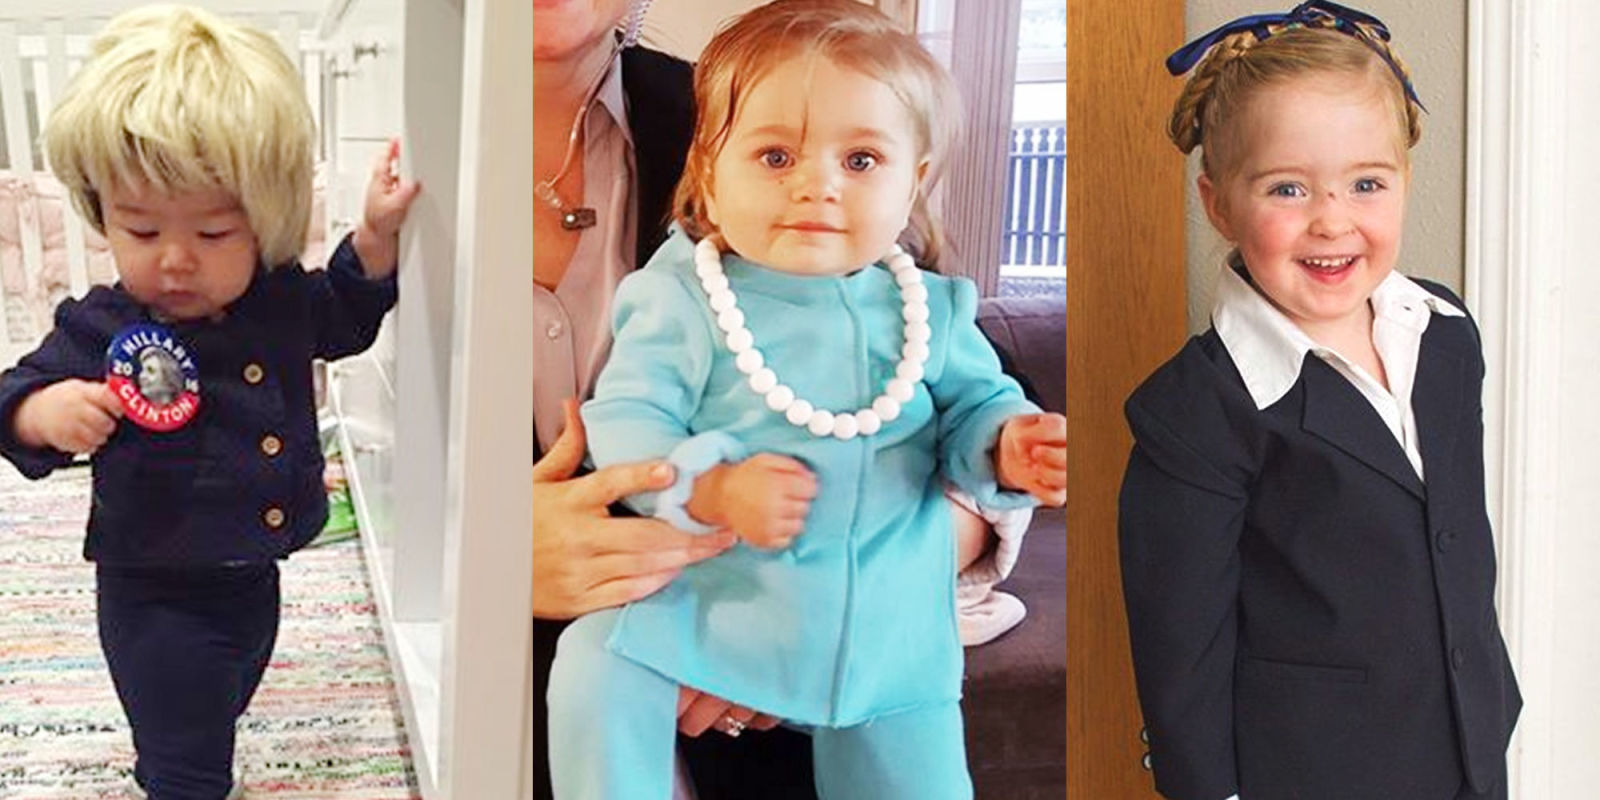 enjoy these photos of adorable patriotic kids in pantsuits